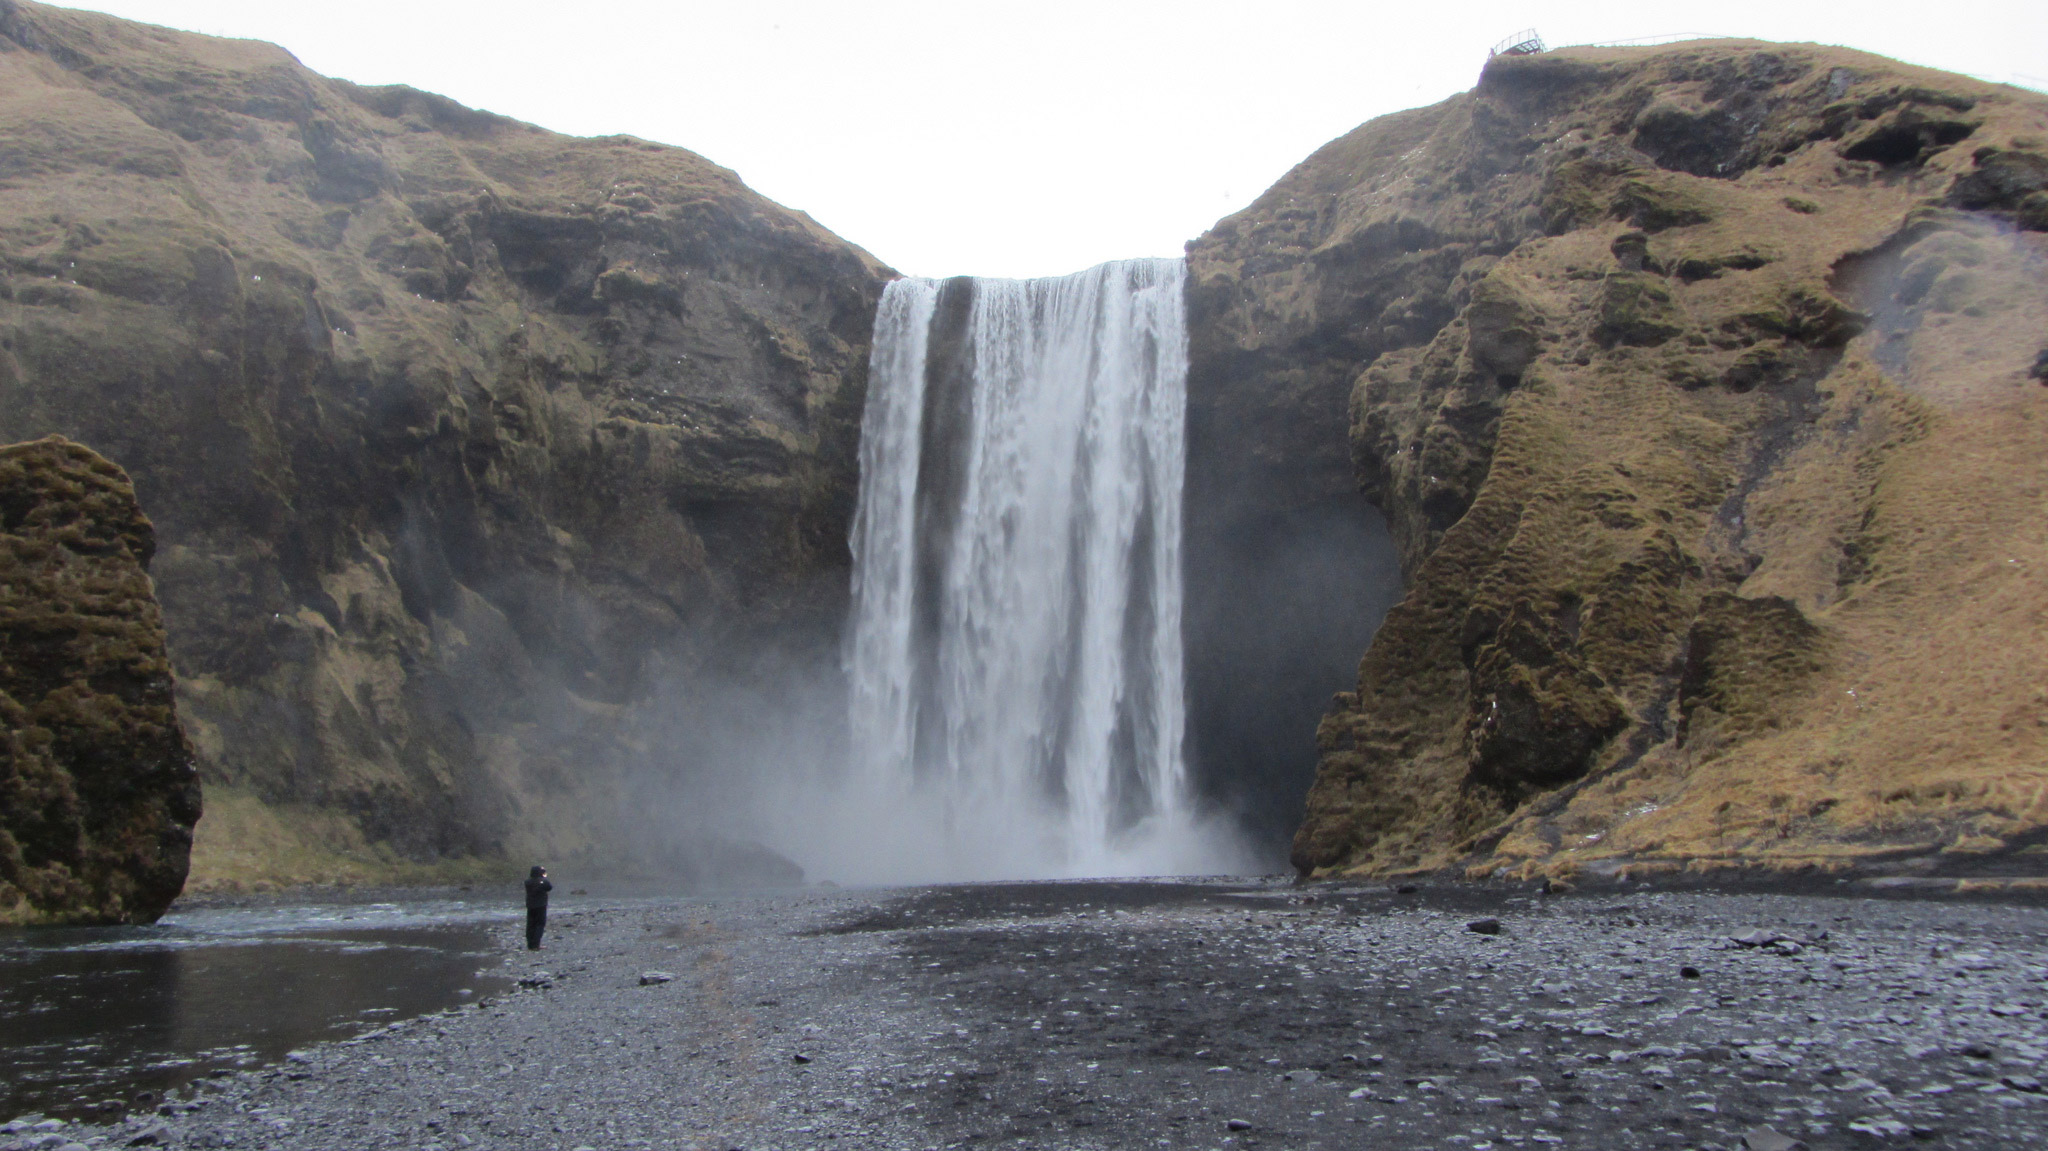 The enormous waterfall at Skógafoss